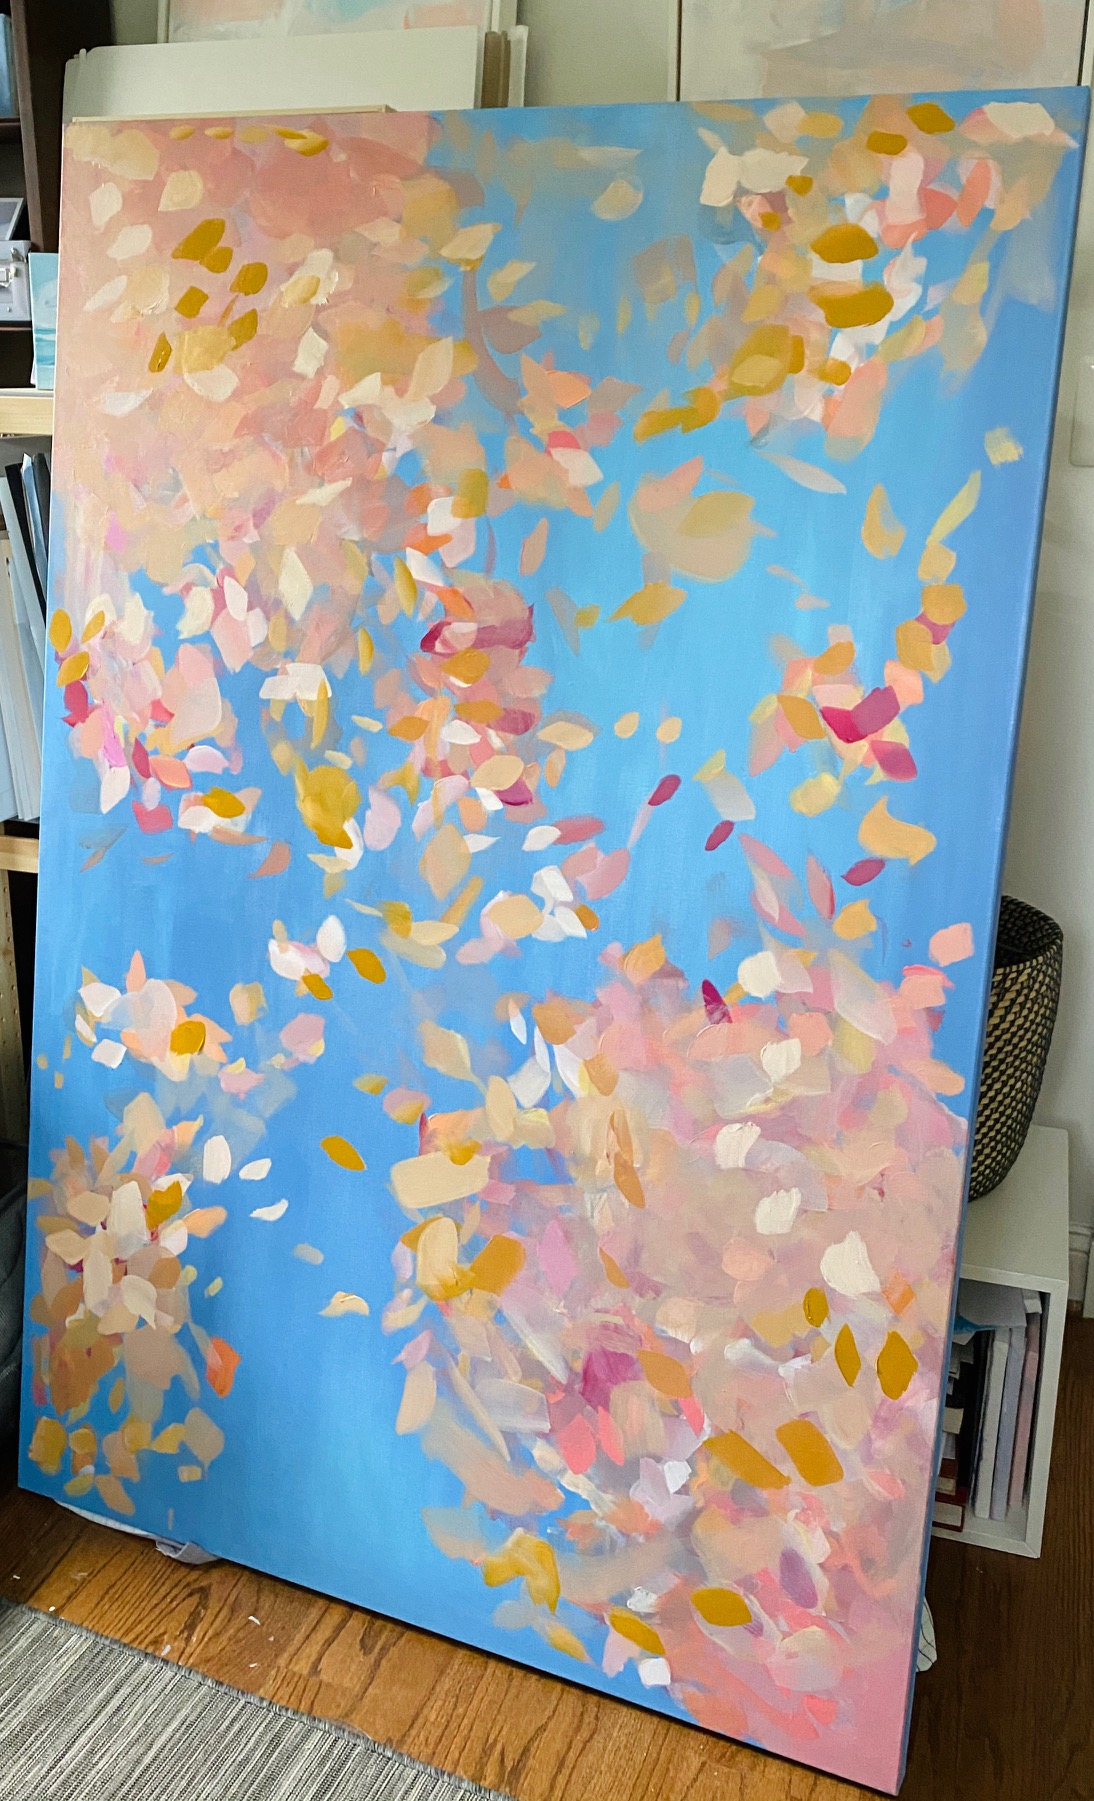 blue canvas with multi colored strokes to display as leaves falling